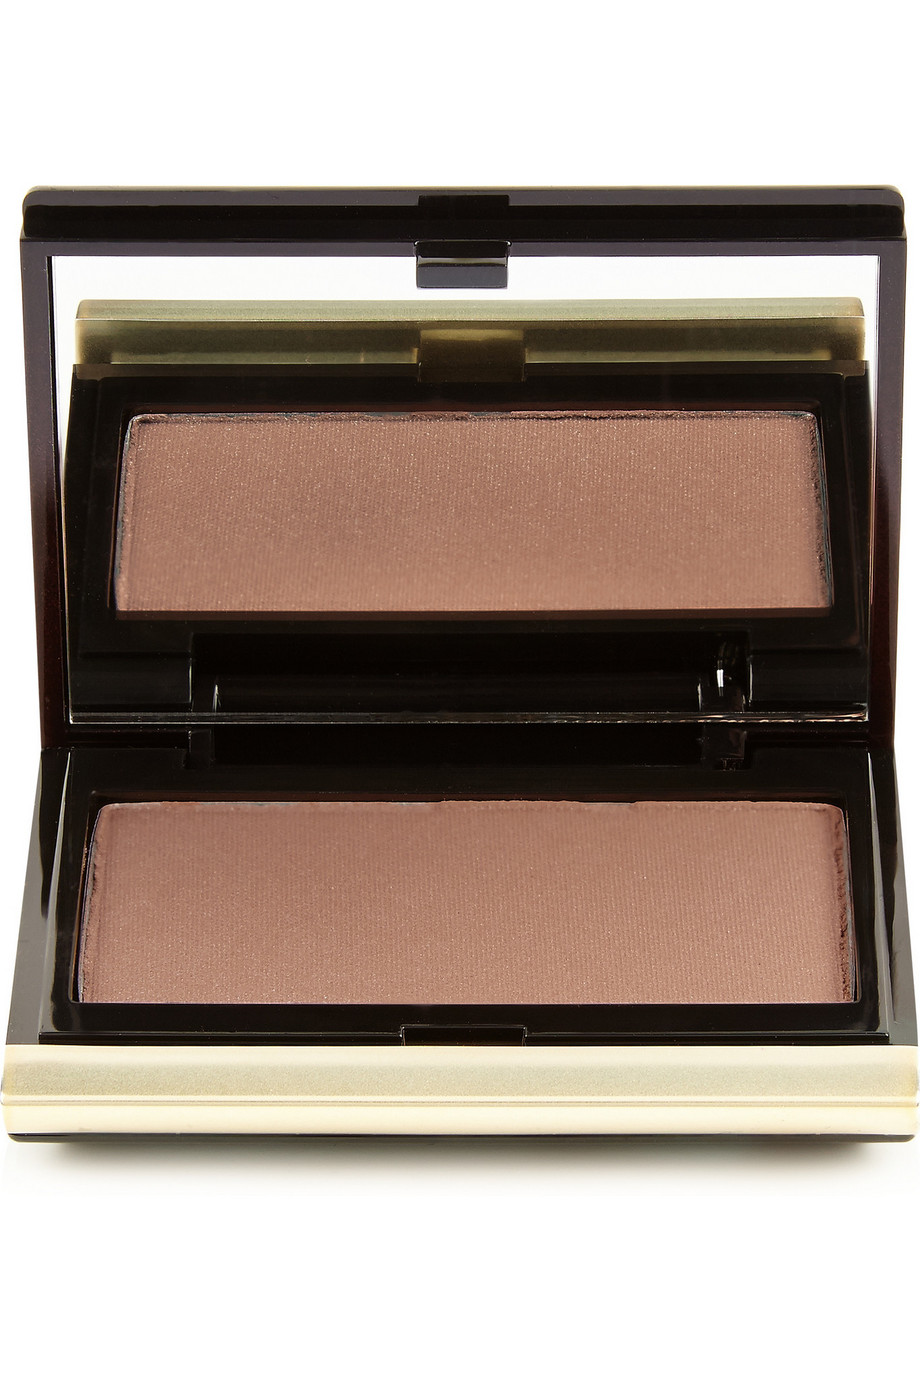 The Pure Powder Glow - Natura, by Kevyn Aucoin